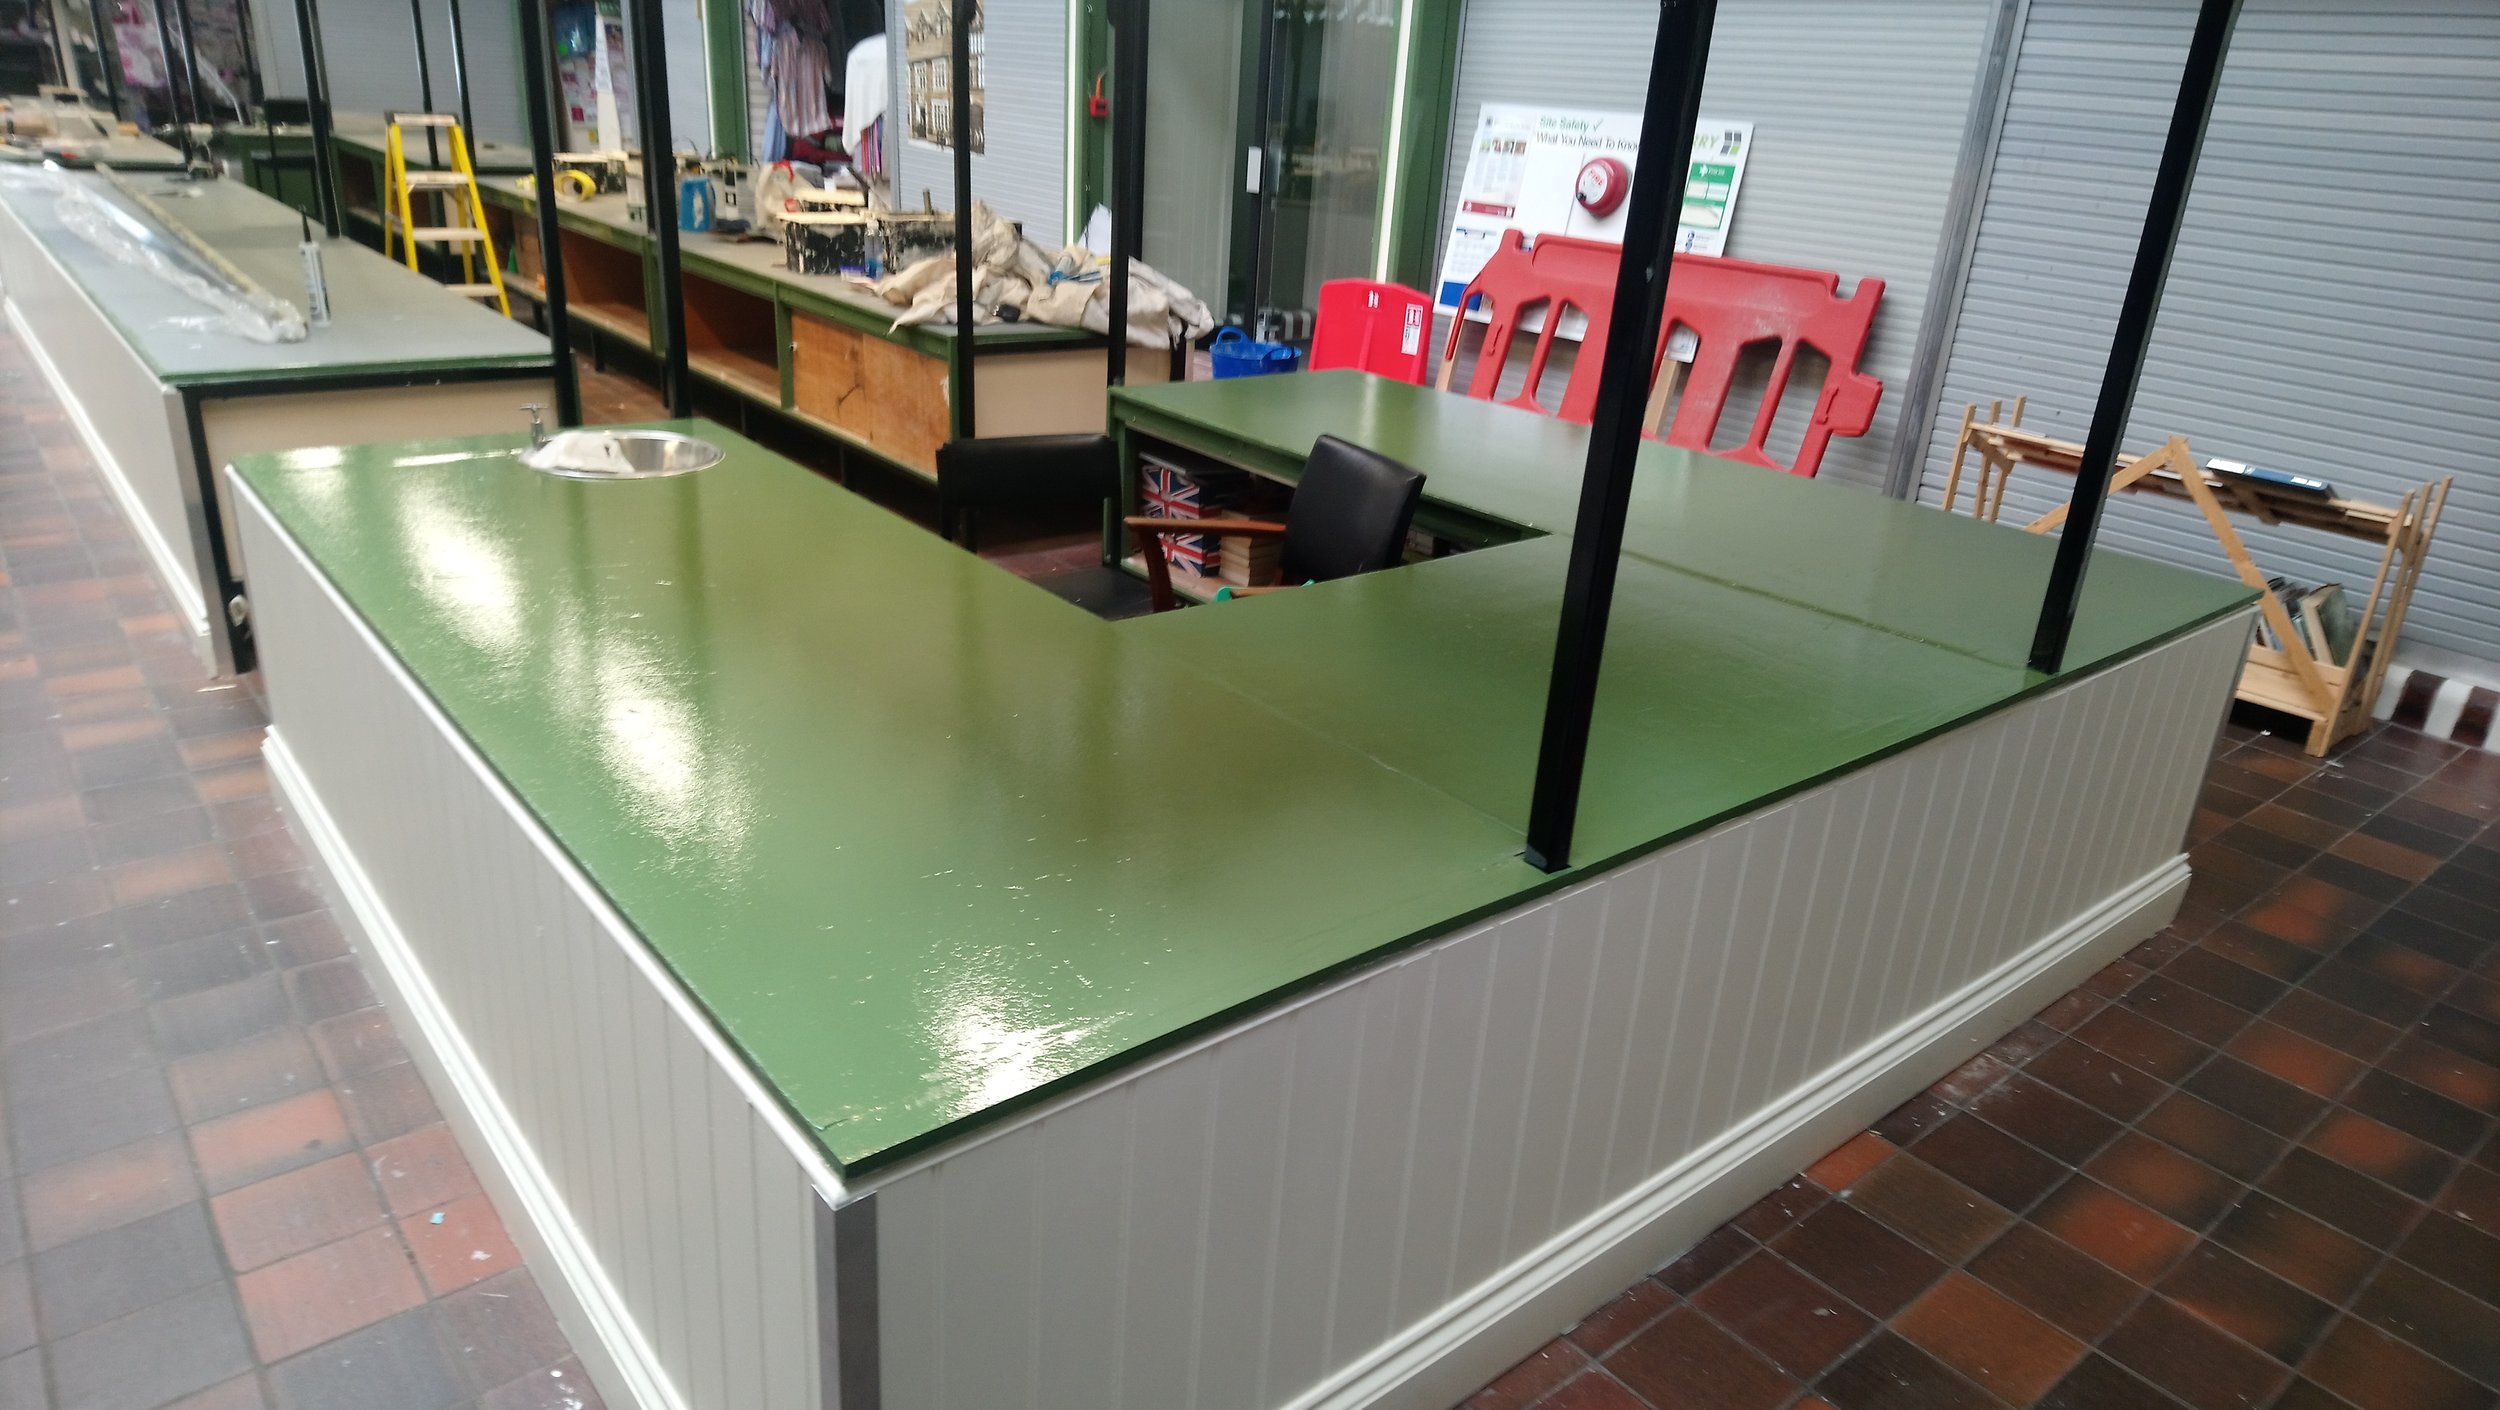 Week 8 - The last week of works in the Market Hall. First of the table tops decorated and complete.